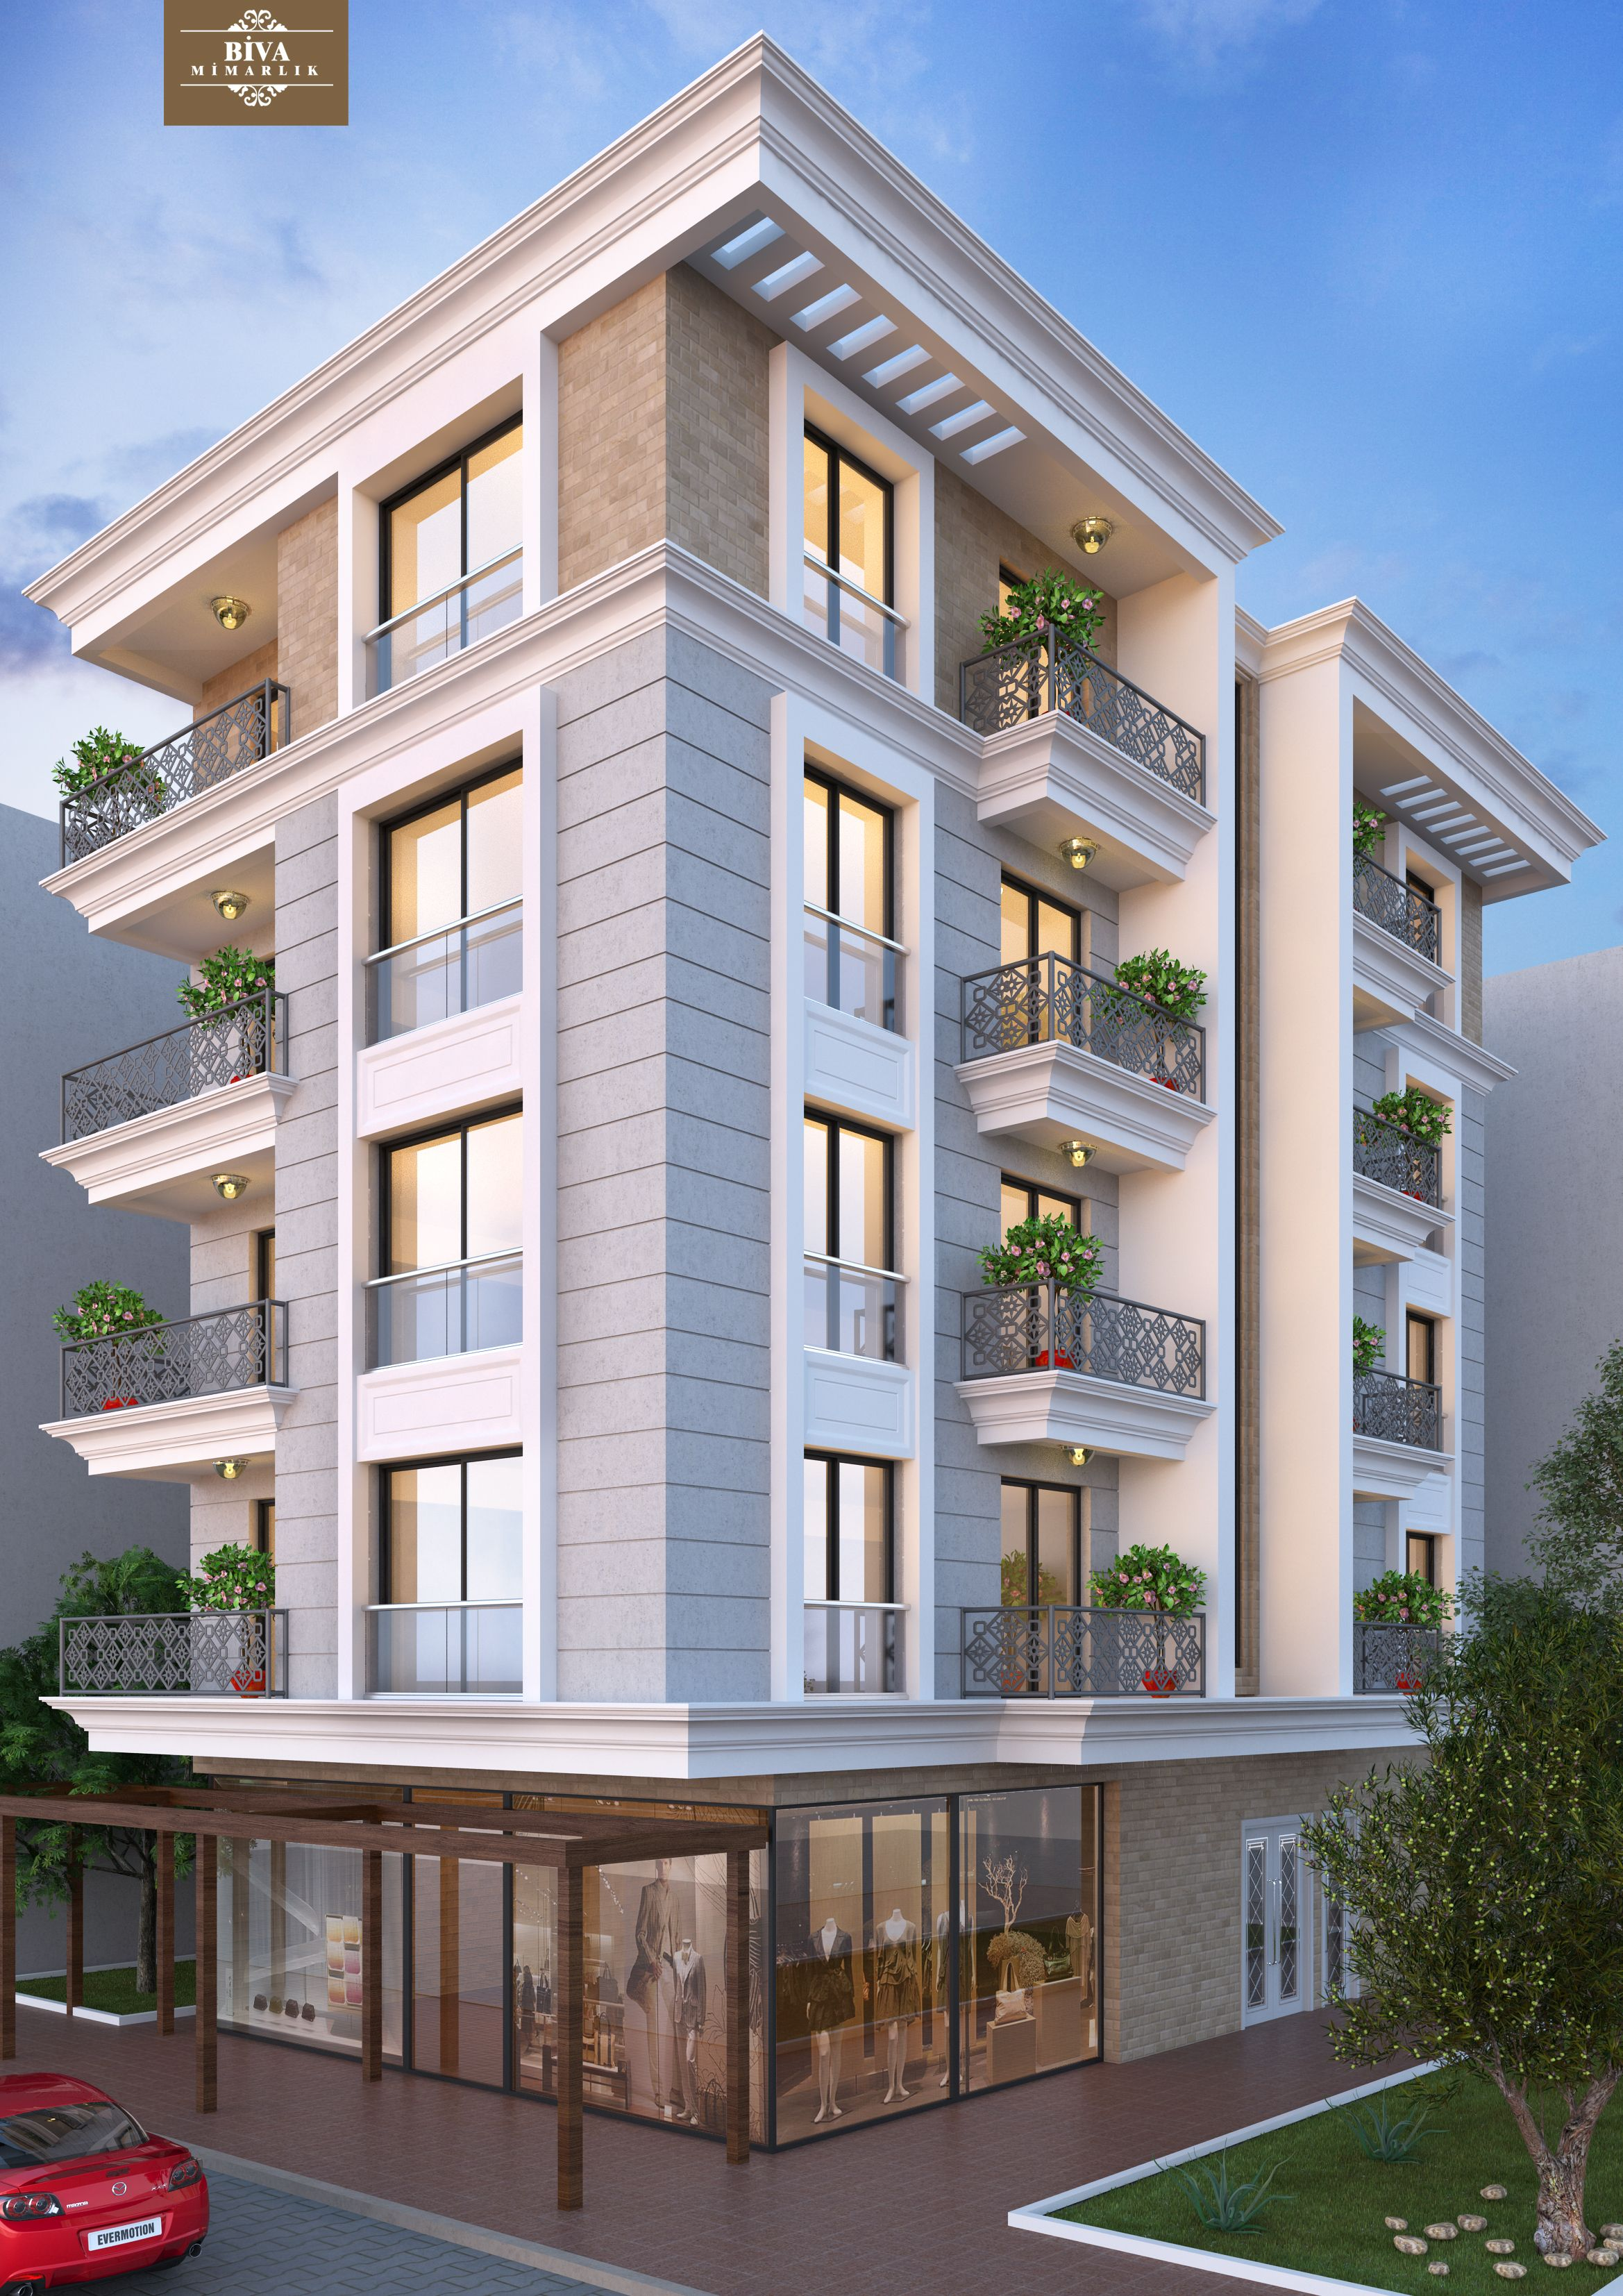 Cephe tasarimi residential architecture design facade exterior house also best images in rh pinterest